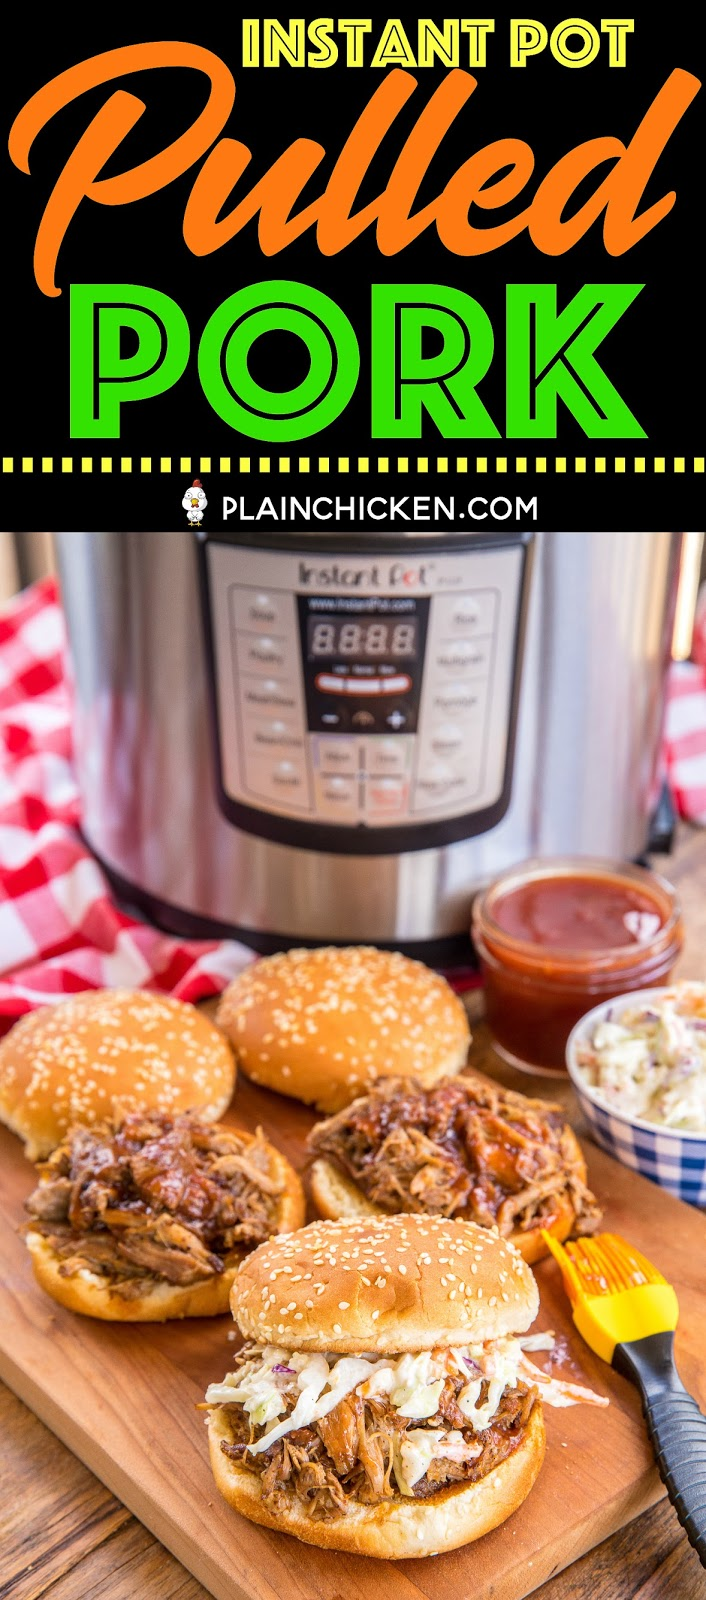 Instant Pot Pulled Pork - seriously THE BEST pulled pork I've EVER eaten!! Pork shoulder/pork butt seasoned with brown sugar, paprika, chili powder, dry mustard, garlic powder and onion powder. This pulled pork was incredibly tender and tasted amazing! Perfect for your summer parties!! #instantpot #pulledpork #porkbutt #porkrecipes #instantpotrecipes